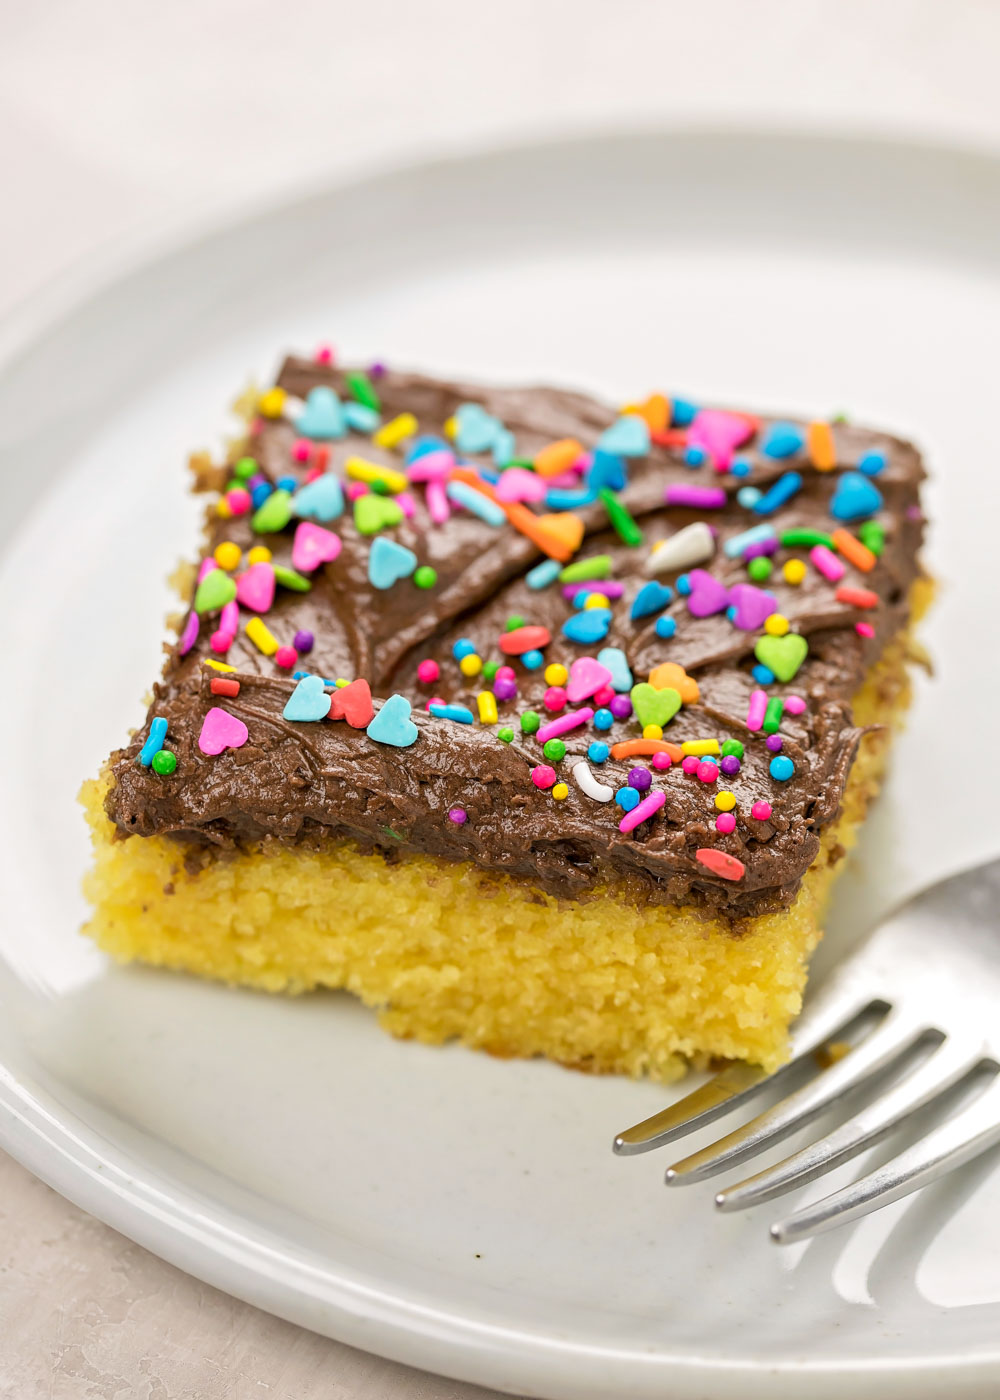 A slice of moist yellow cake with chocolate frosting on a white plate